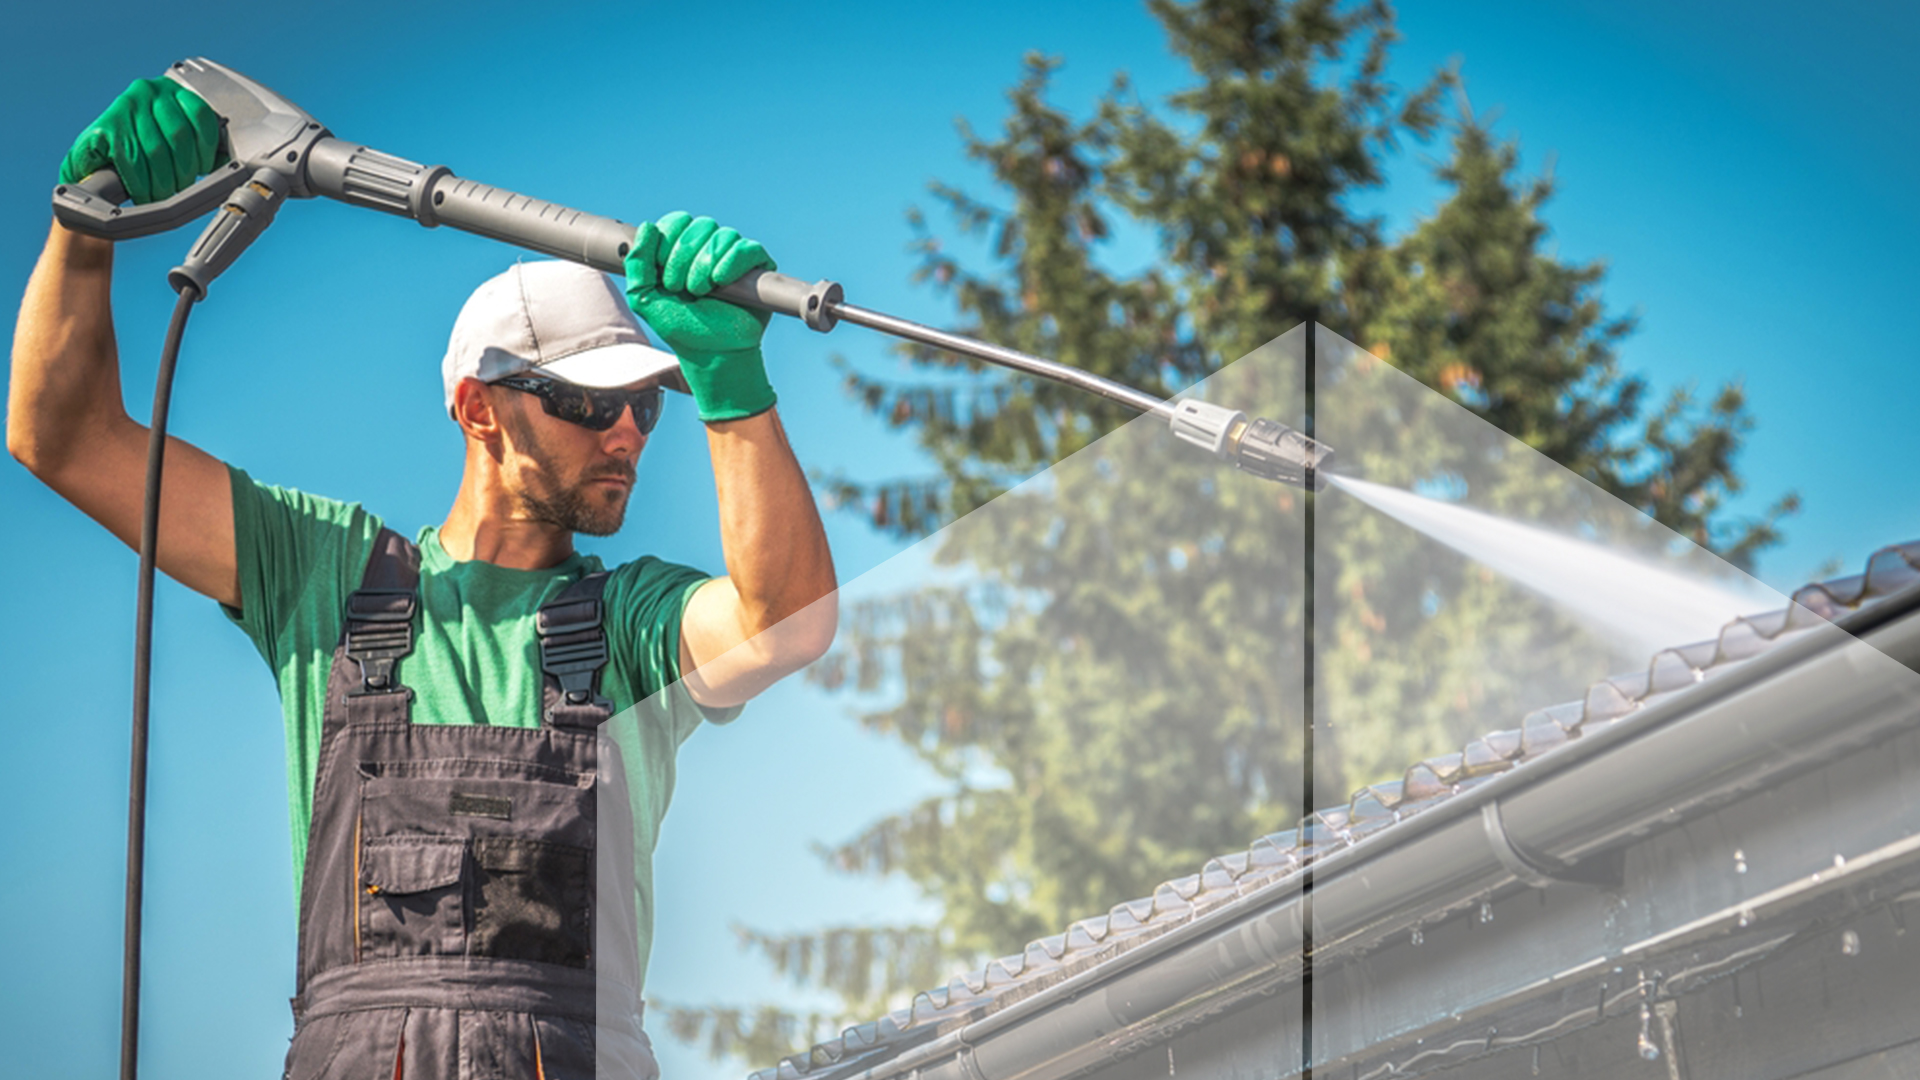 Pressure washing a roof to clean it and gutter cleaning